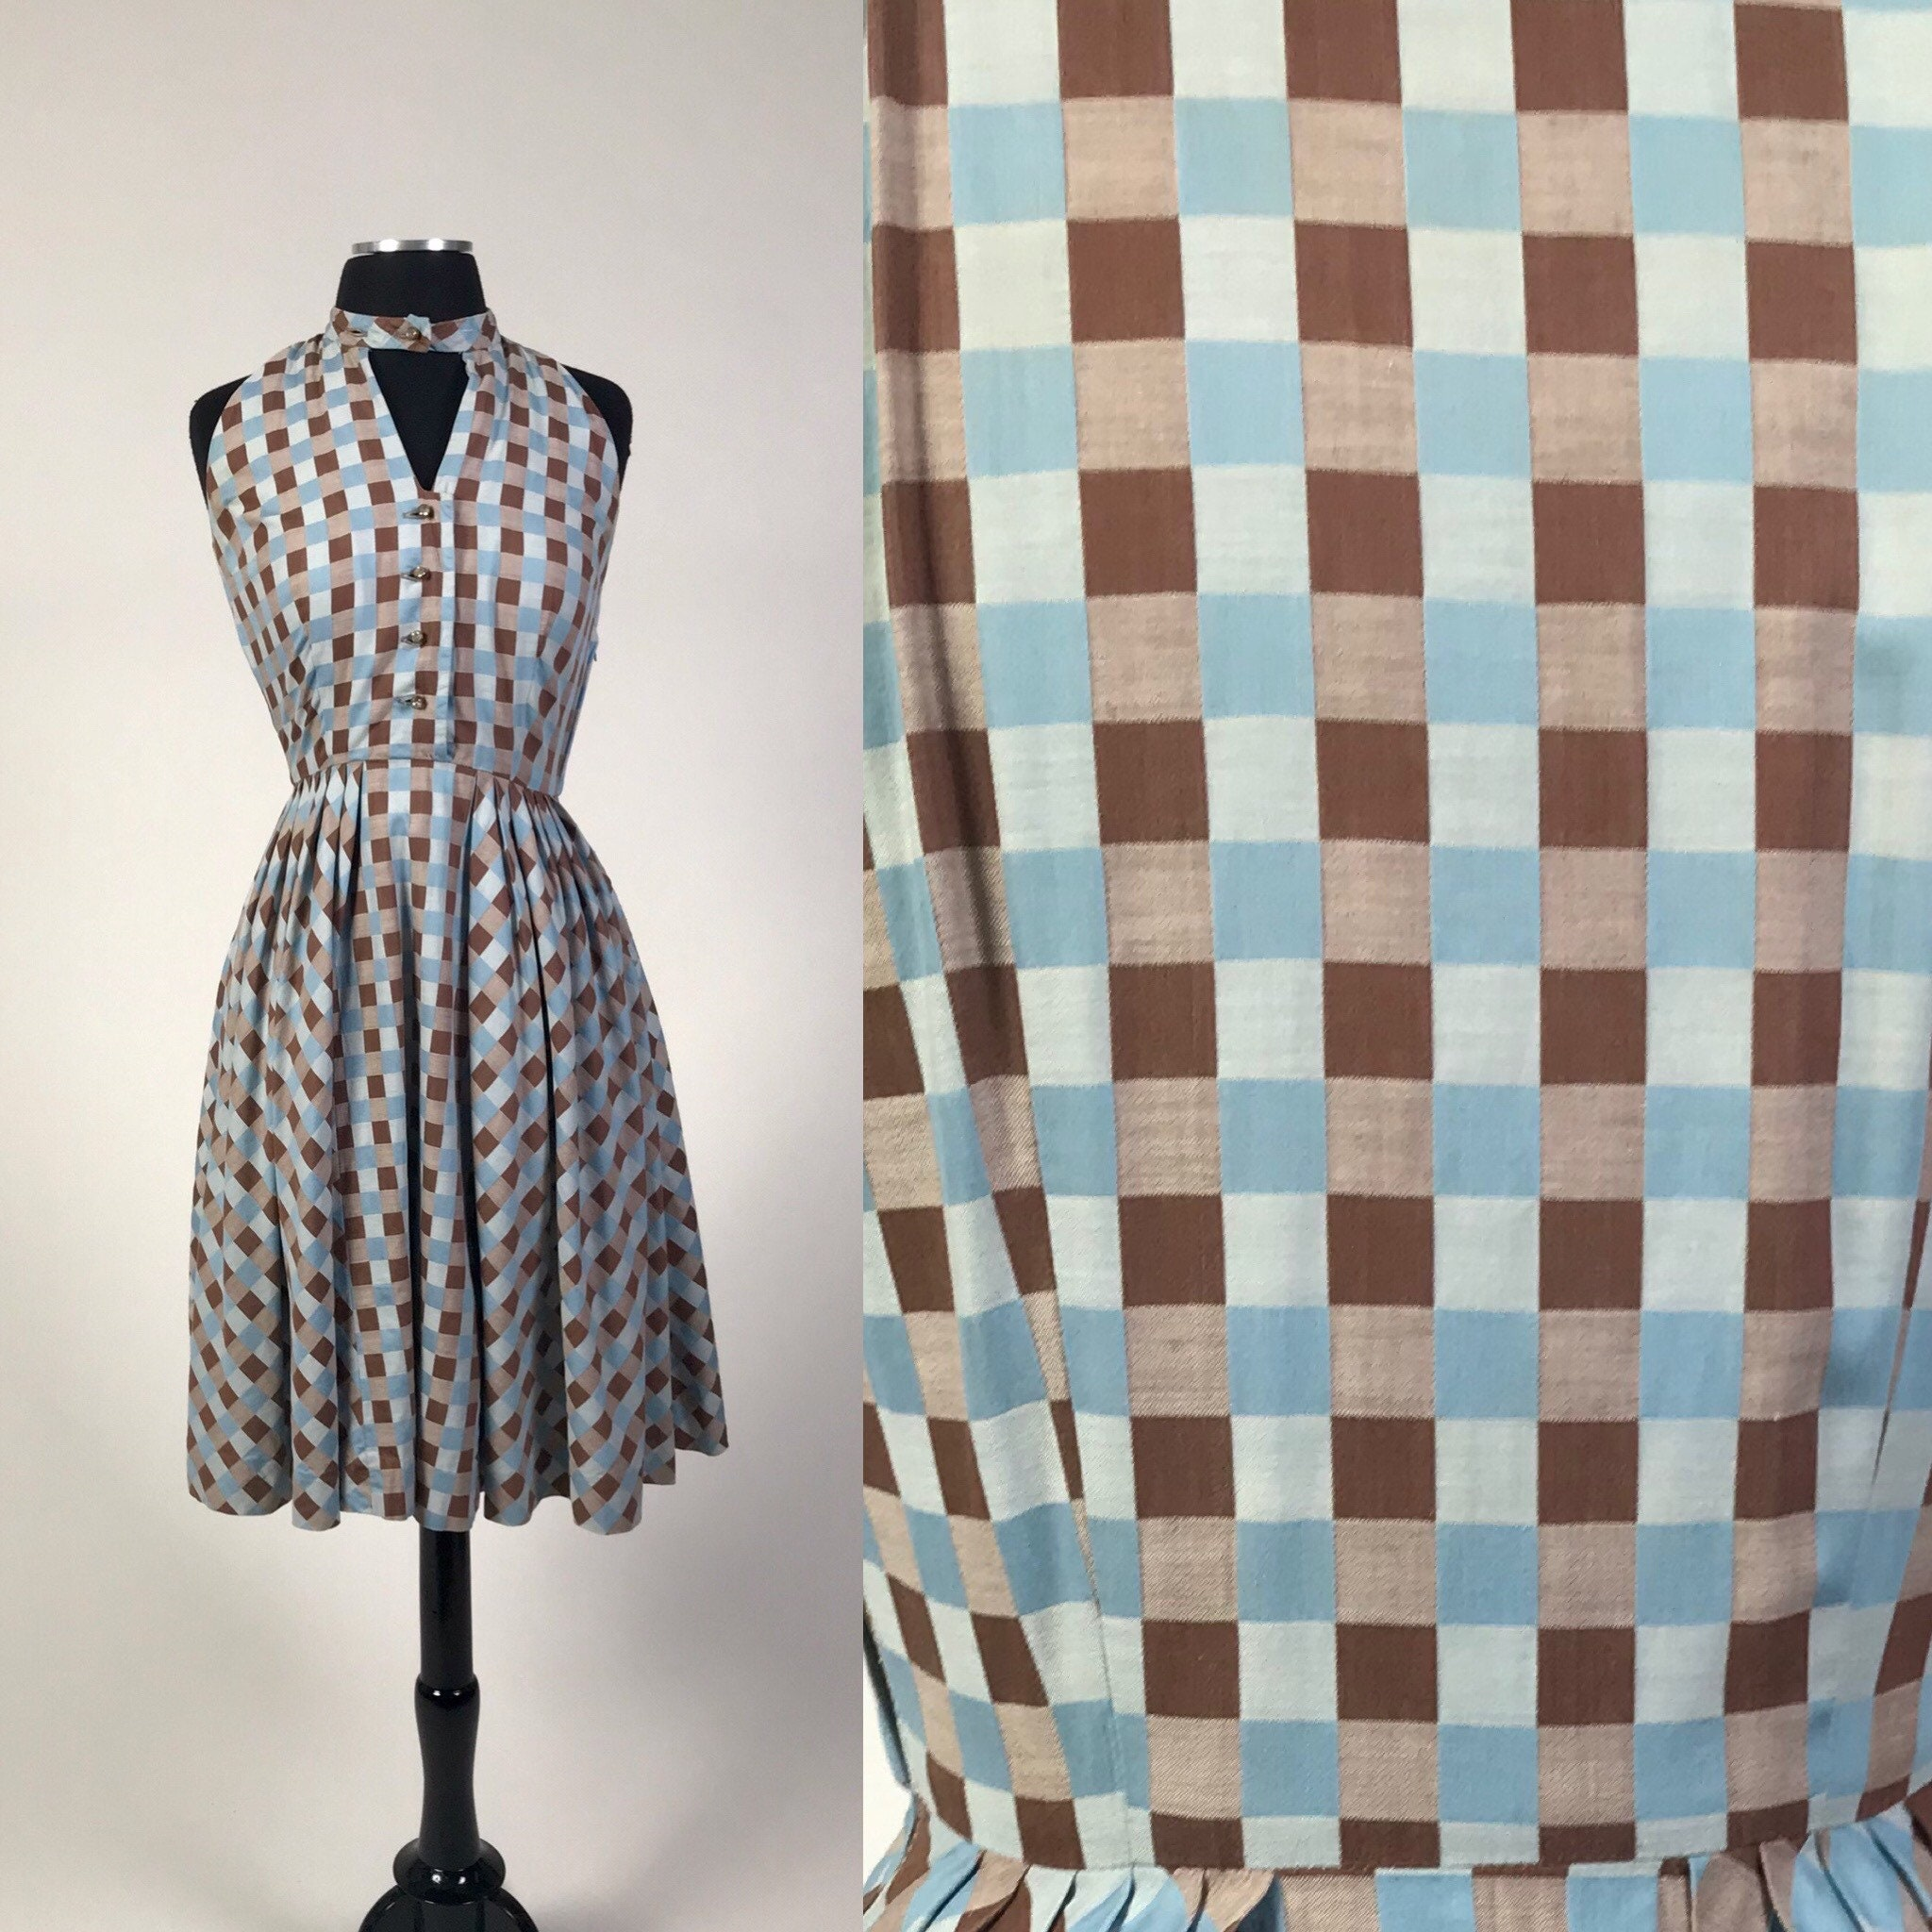 Vintage Scarf Styles -1920s to 1960s Vintage 1940S Cotton Blue  Brown Checker Plaid Fit Flare Dress Matching Scarf Or Shawl Glass Rhinestone Buttons $45.00 AT vintagedancer.com